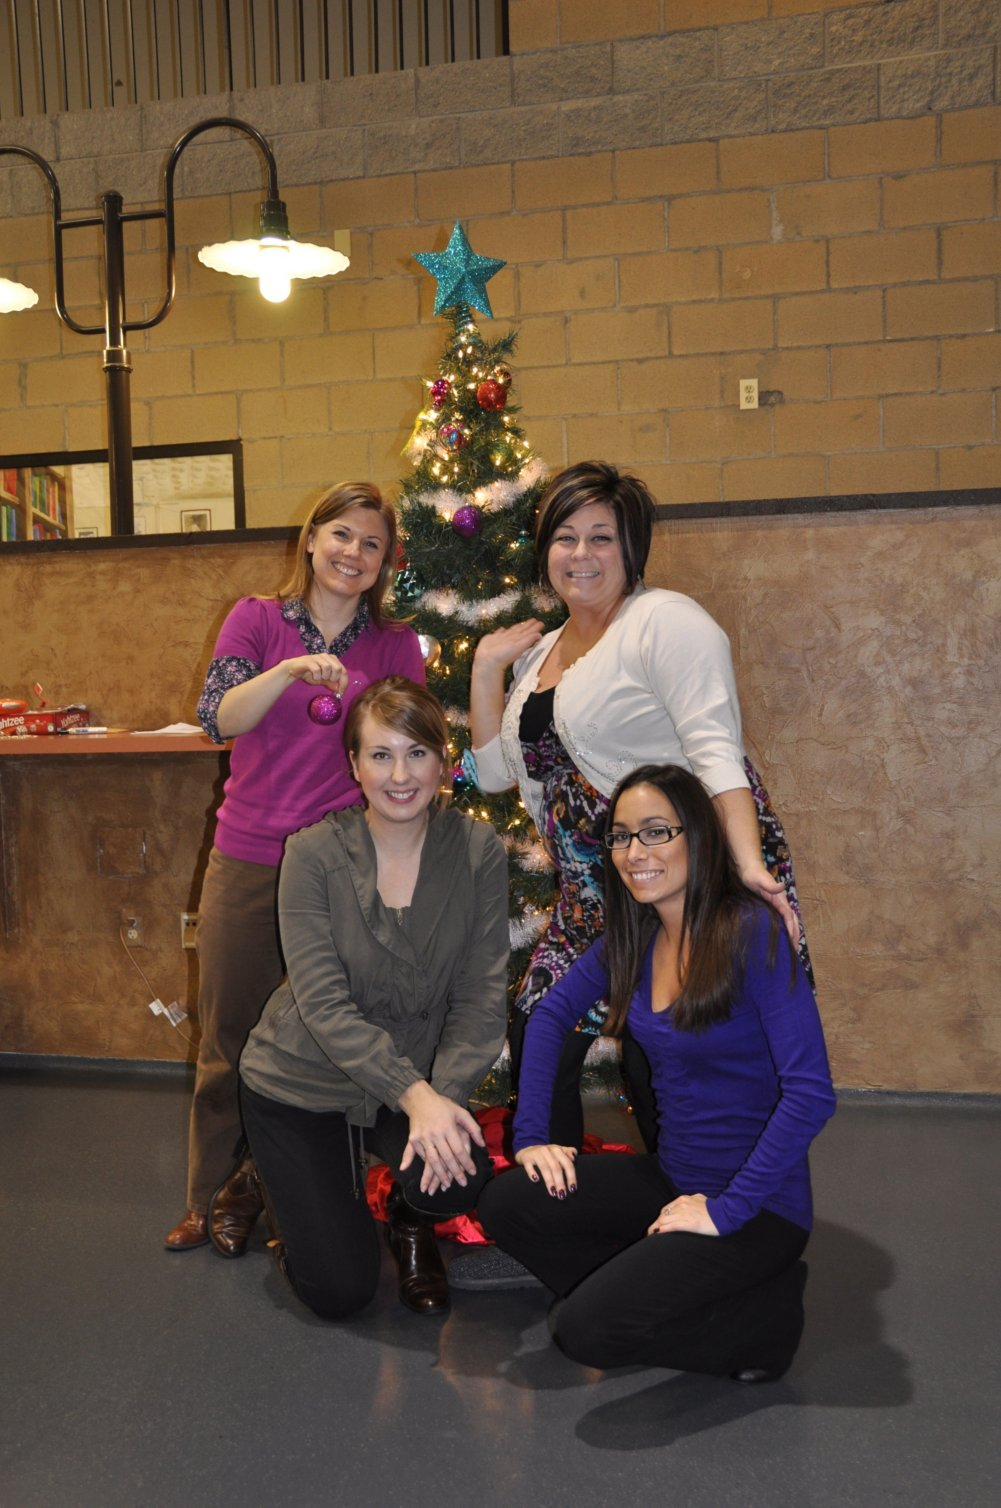 More Pictures of Baudville's Christmas Tree